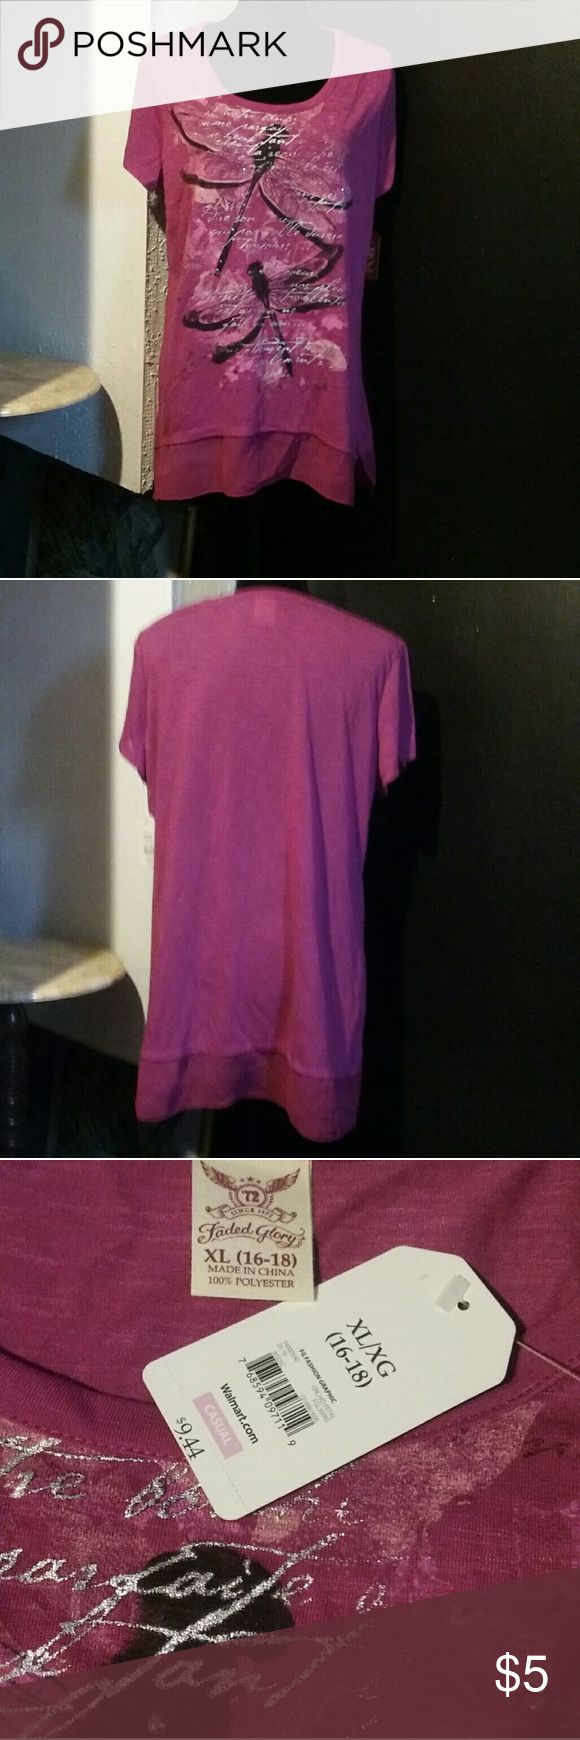 FADED GLORY WOMEN'S FASHION GRAPHIC TOP Short Sleeves. 100% Polyester  Size: XL (16-18) Color: Orchid Petal (Reddish Purple) Faded Glory Tops Tees - Short Sleeve